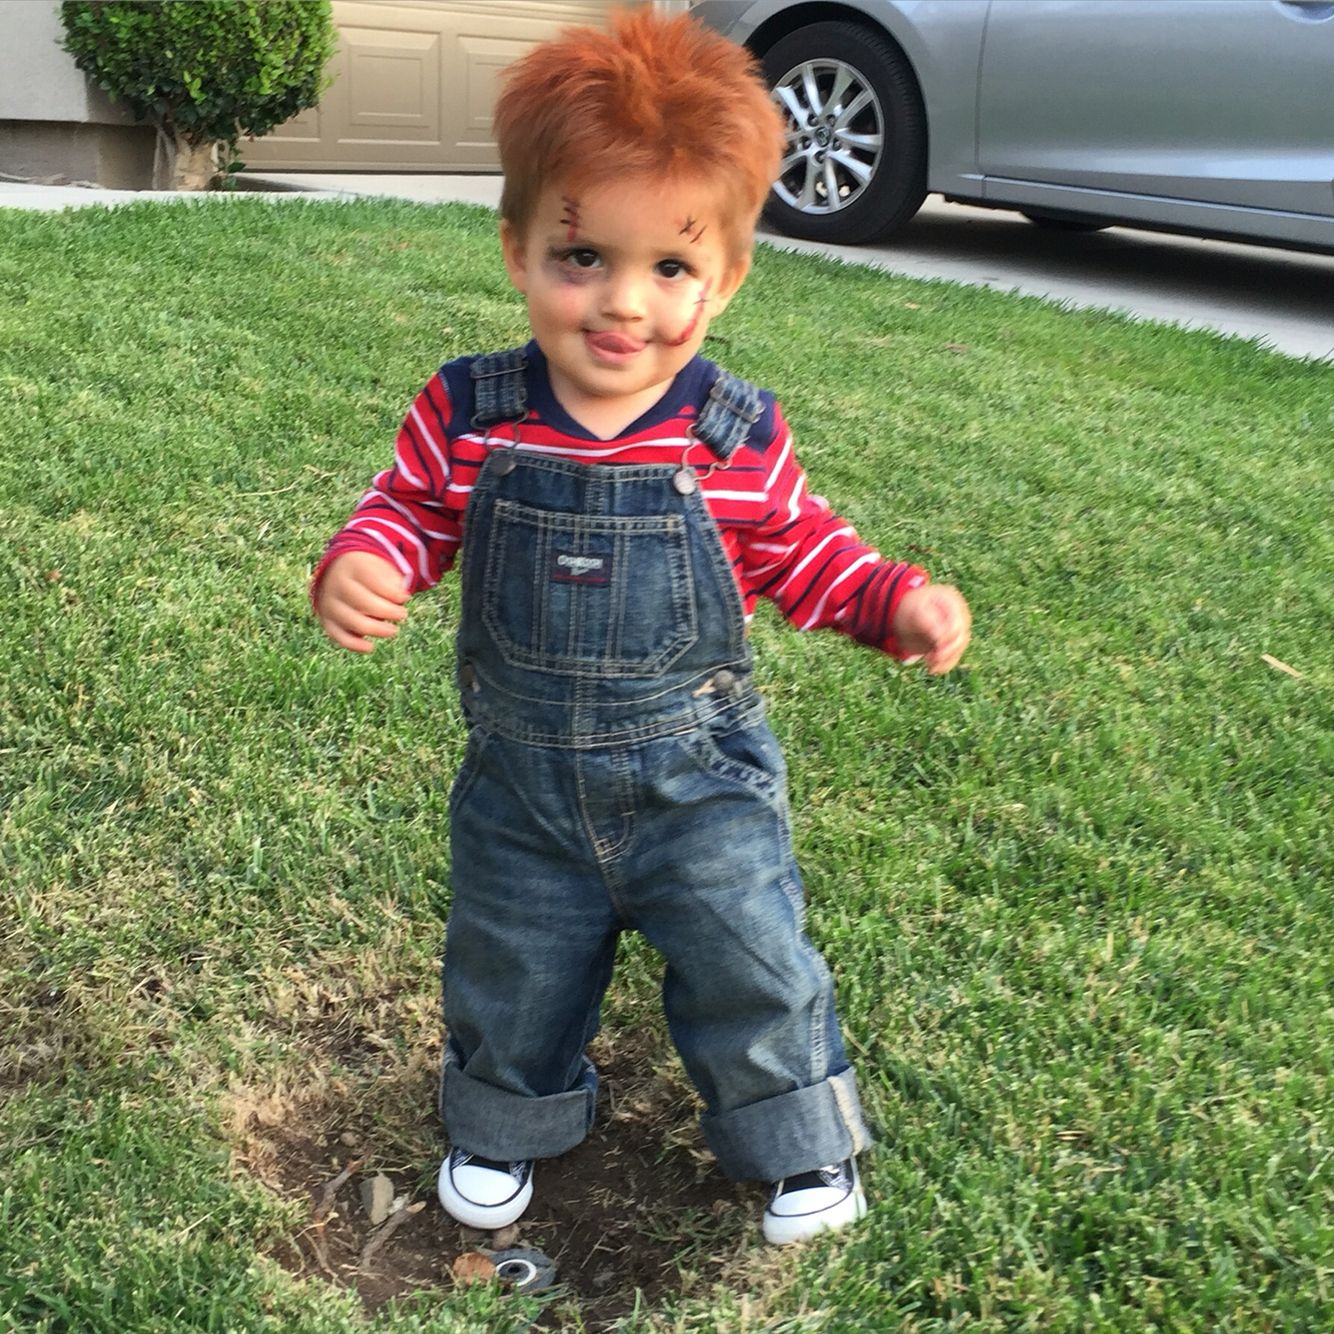 So excited for Riley's chucky costume!